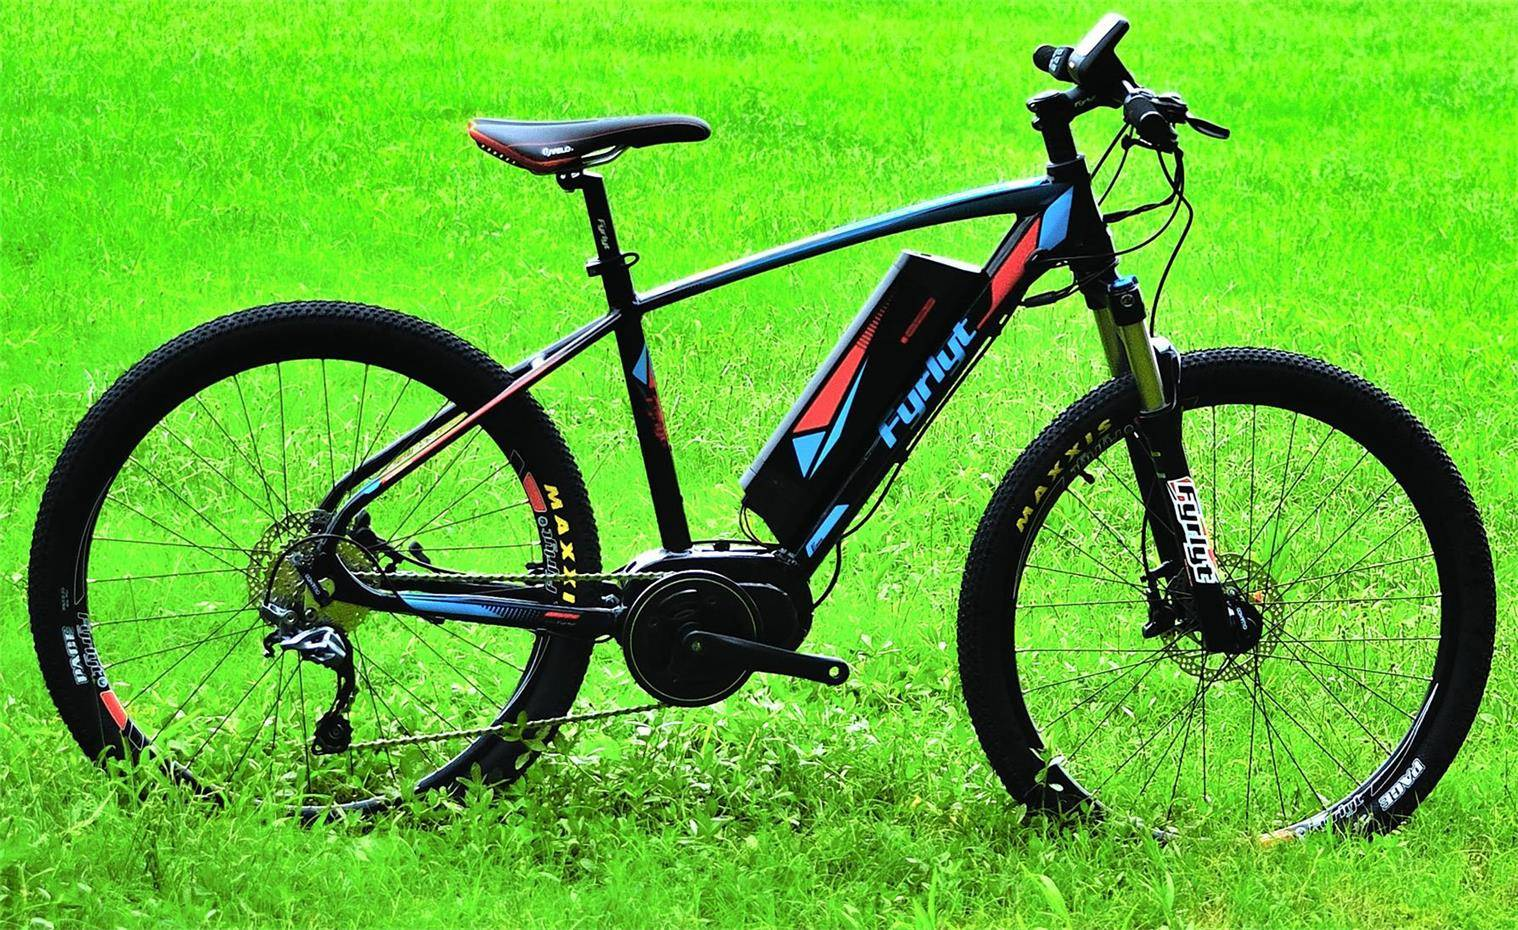 250W Mid-Drive E-bicycle